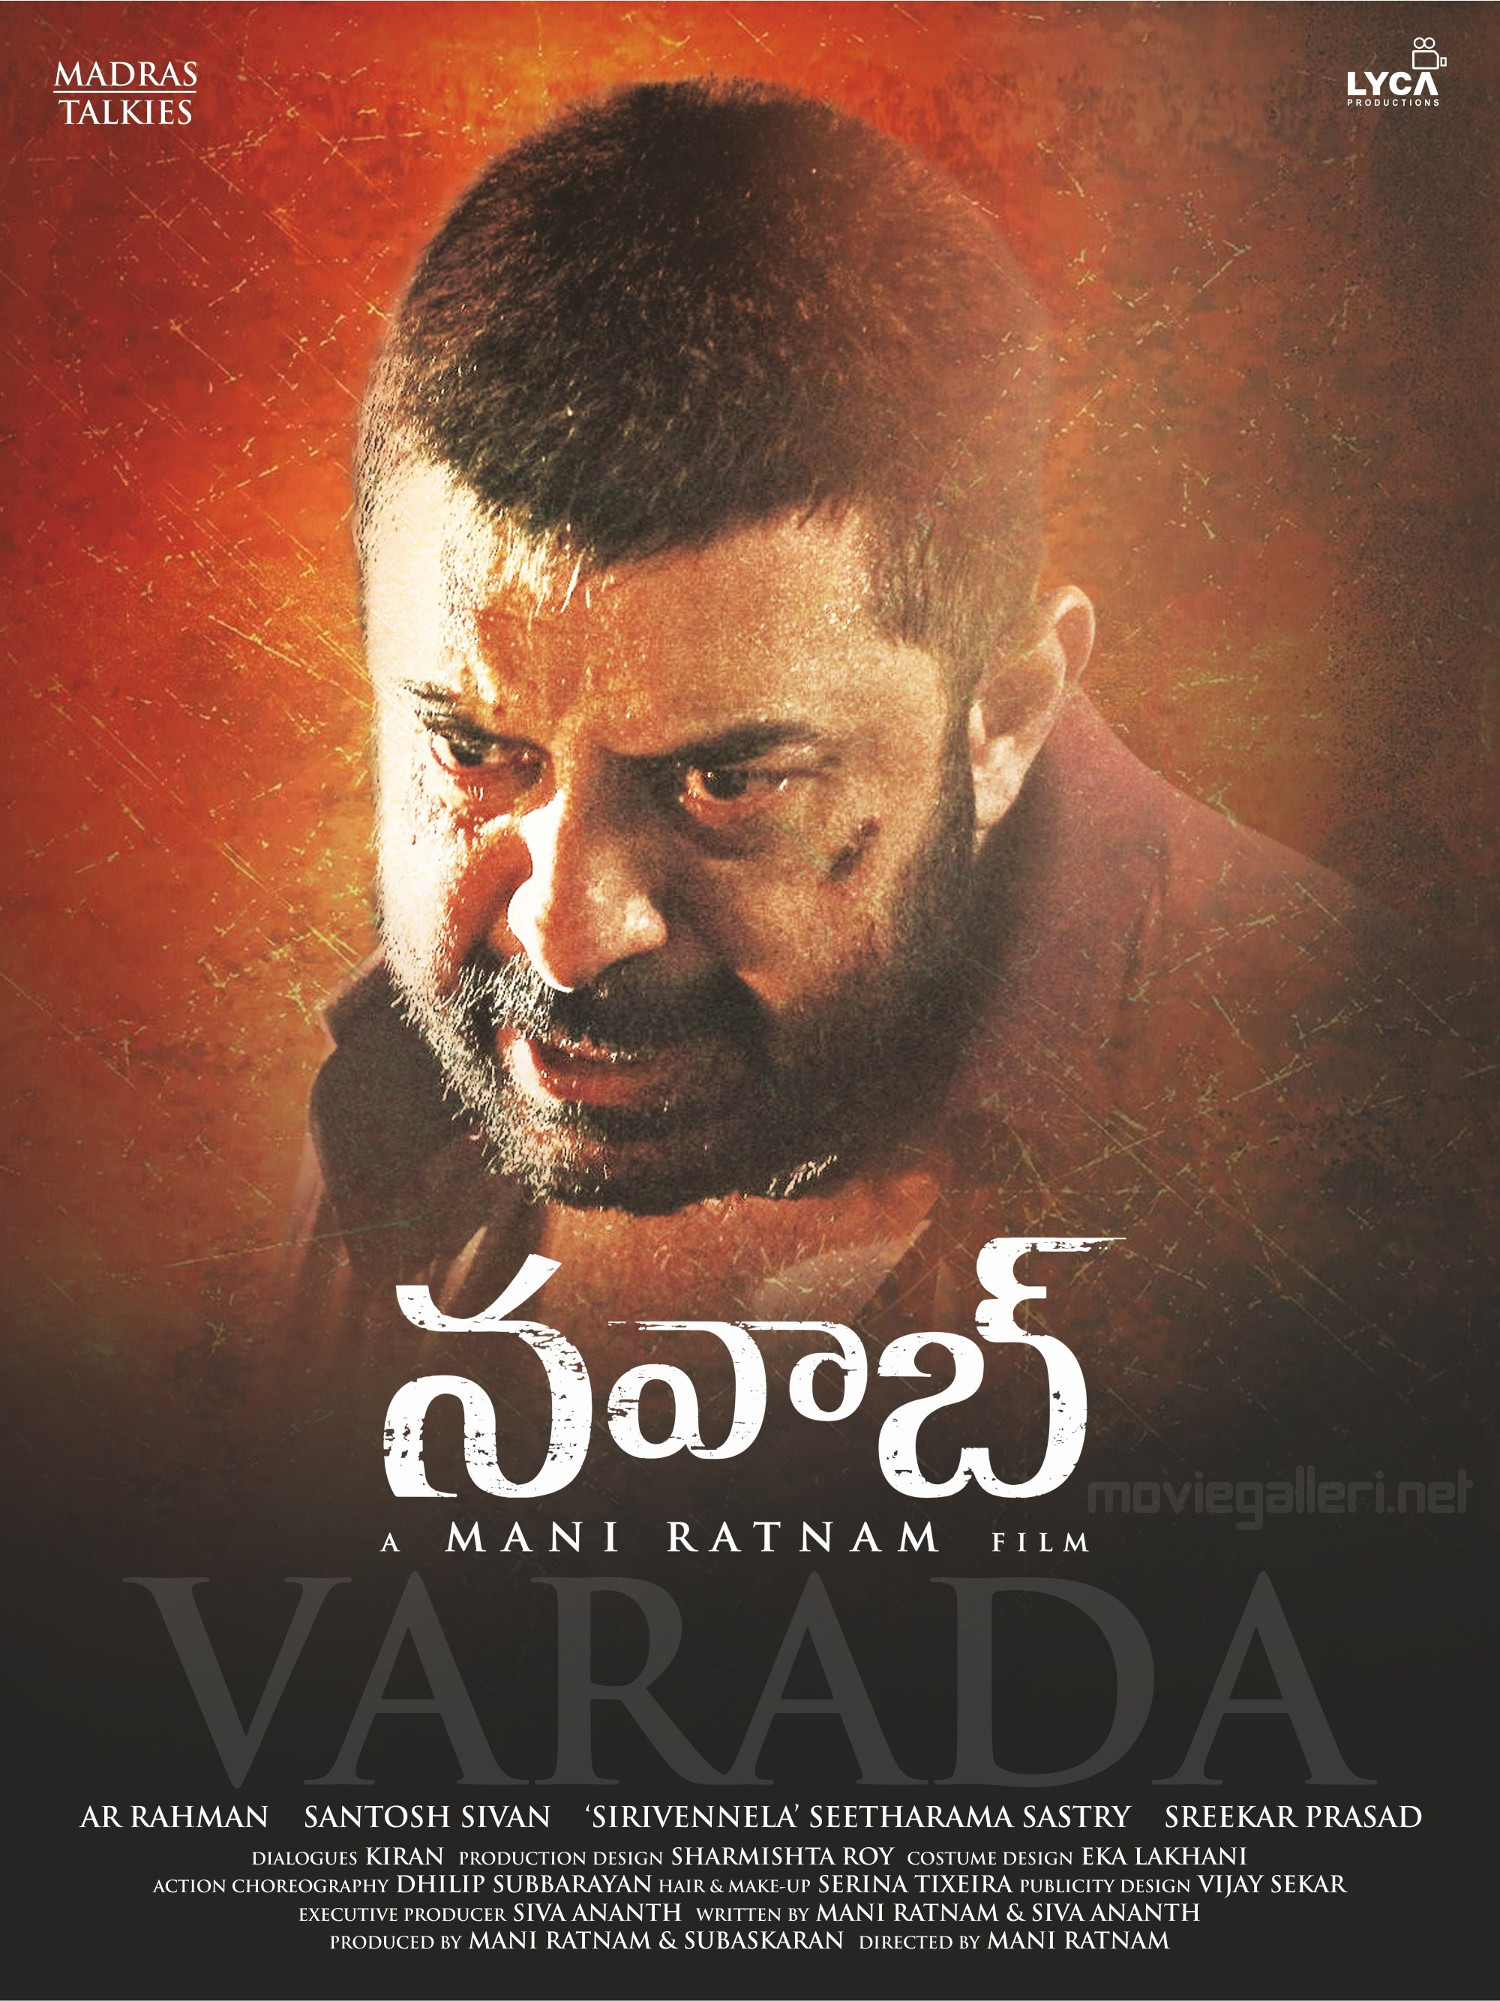 Actor Arvind Swami as Varada In Nawab Movie First Look Poster HD